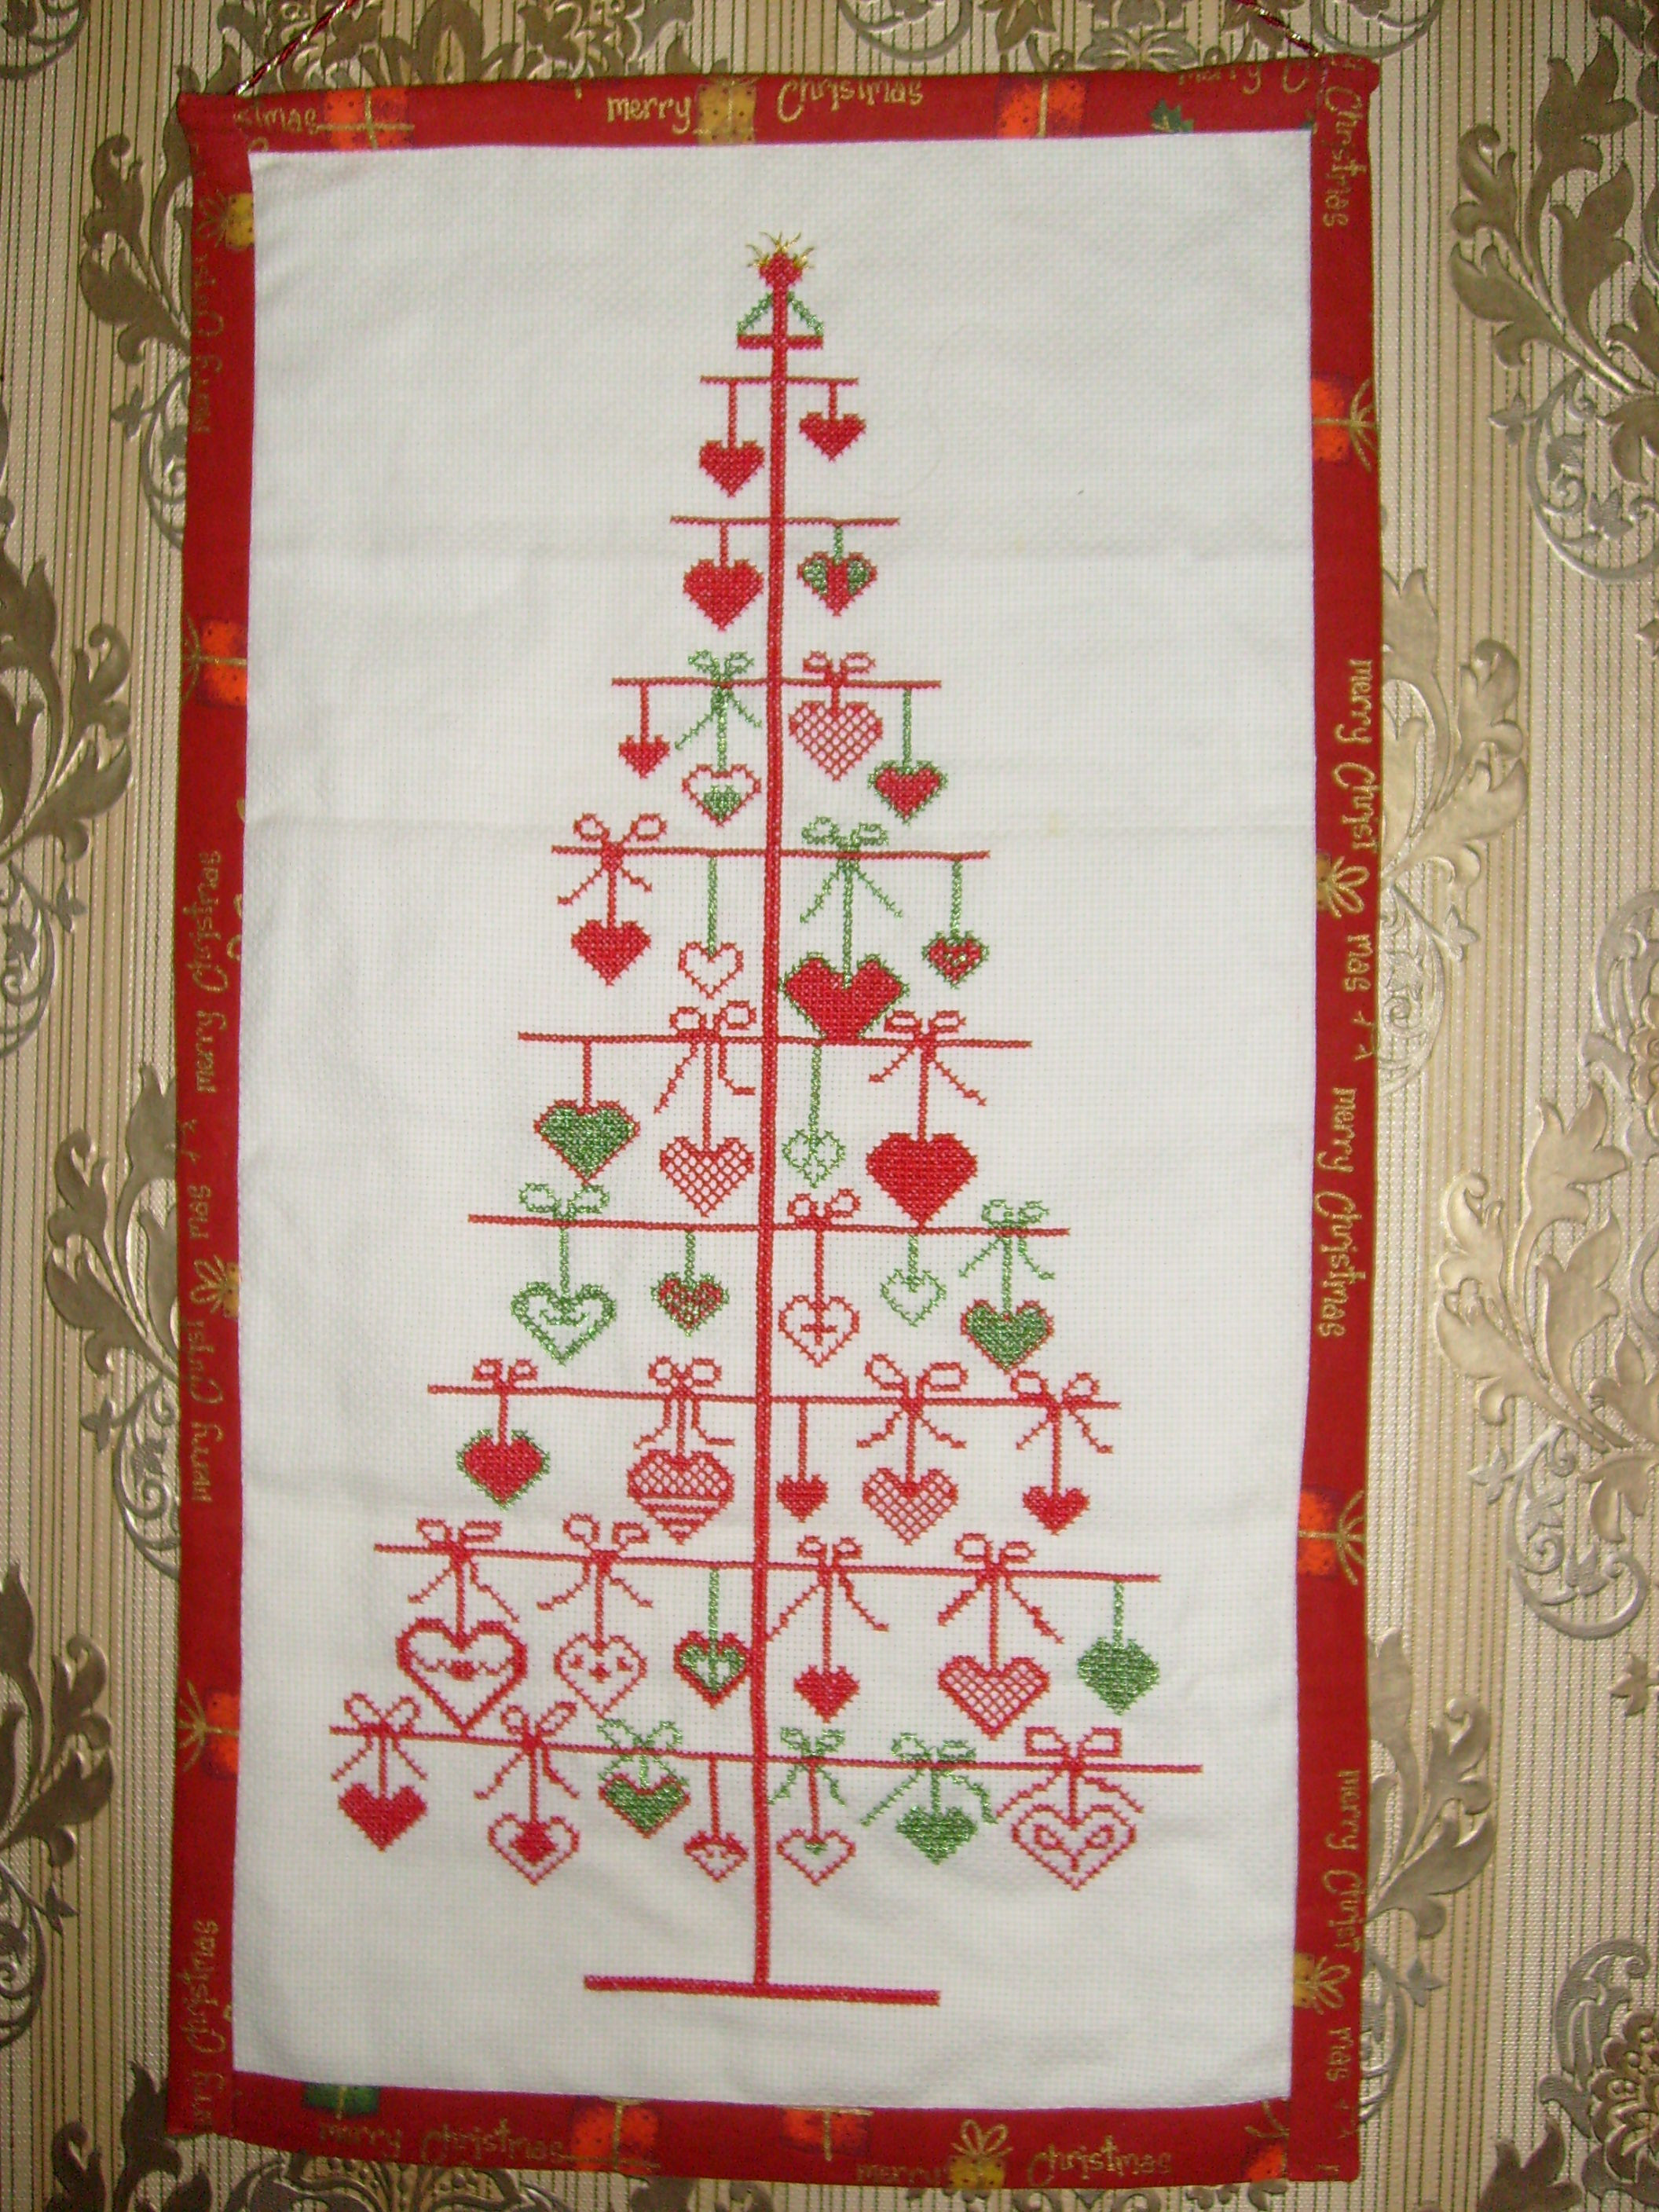 Fresh Christmas Tree Of Hearts – Sew Rosey Christmas Cross Stitch Patterns Of Charming 48 Pics Christmas Cross Stitch Patterns